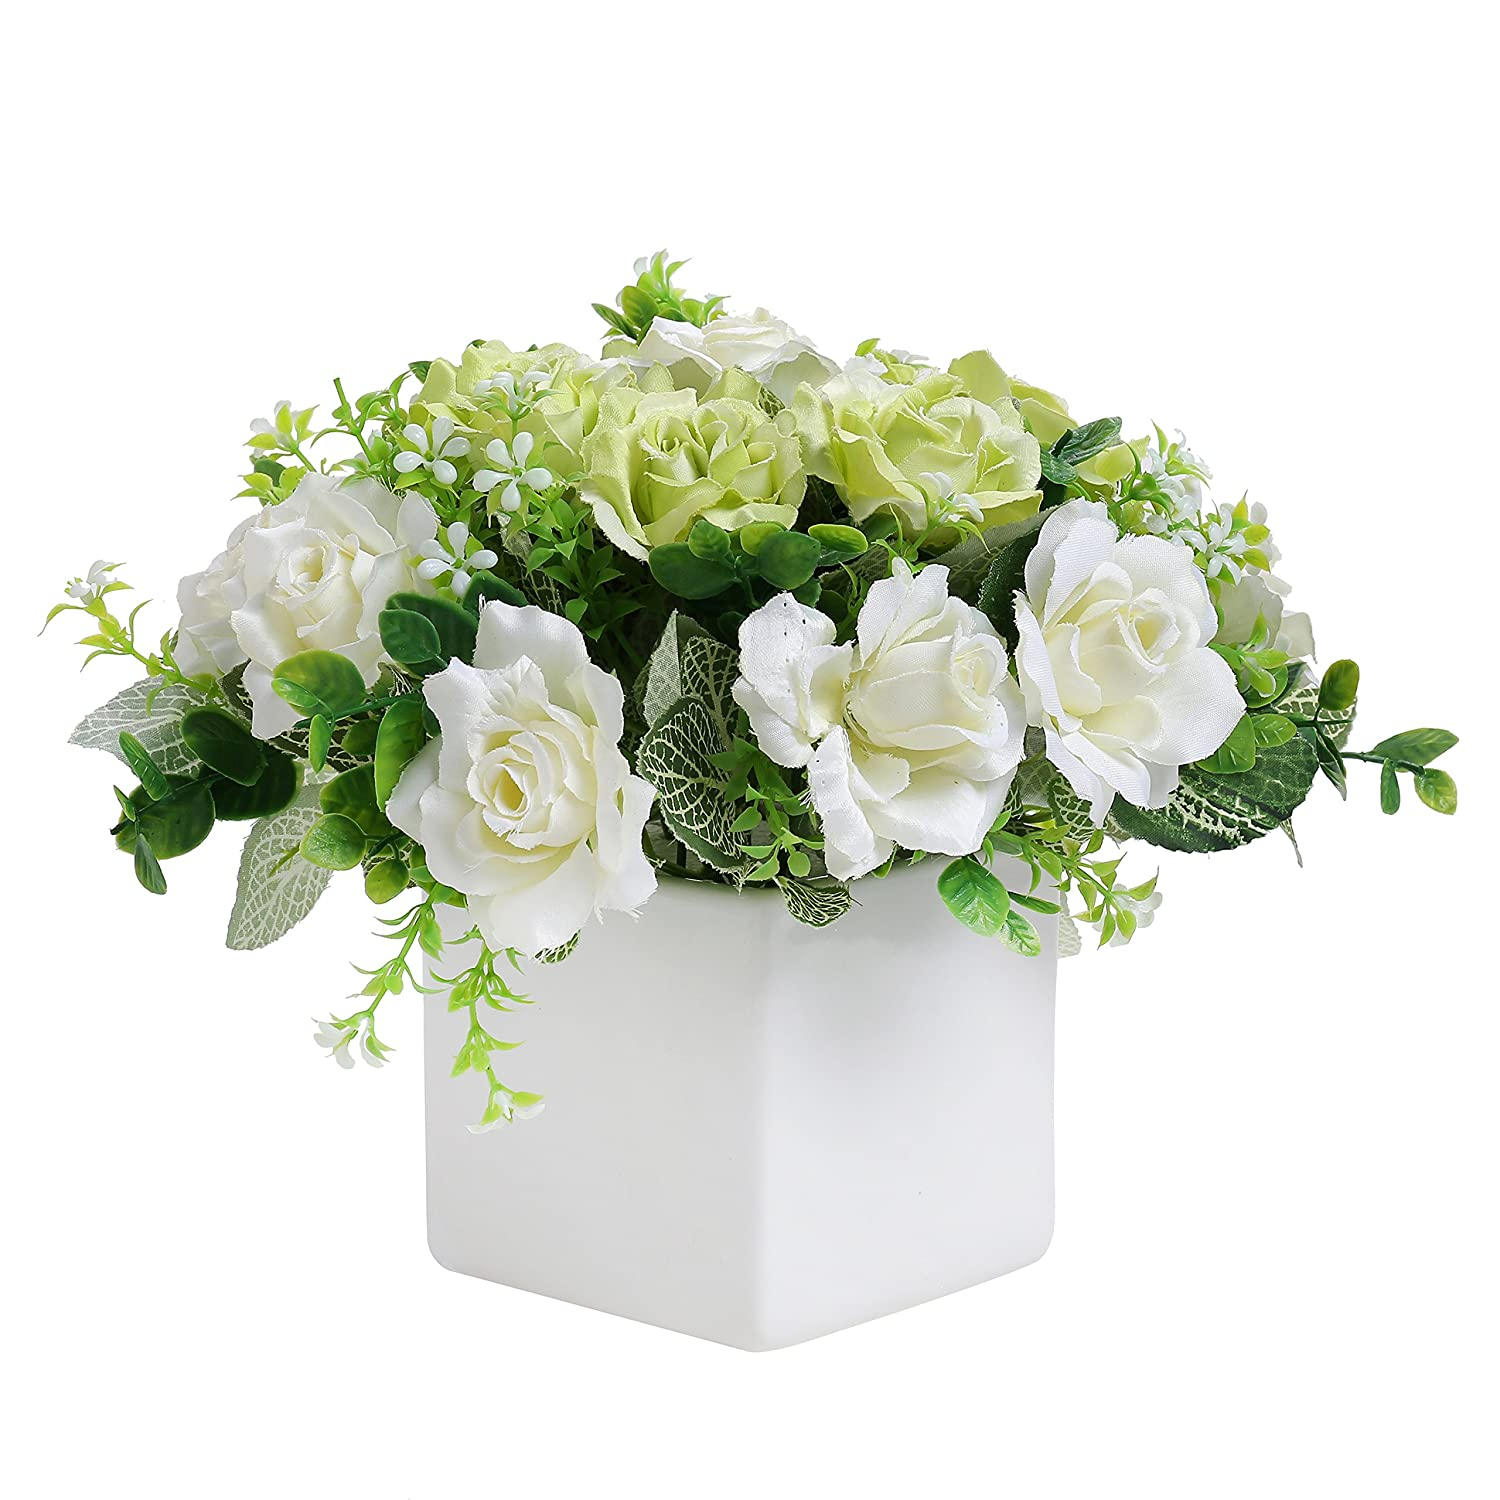 225 & MyGift Decorative Artificial Ivory Rose Floral Arrangement in Square White Ceramic Vase